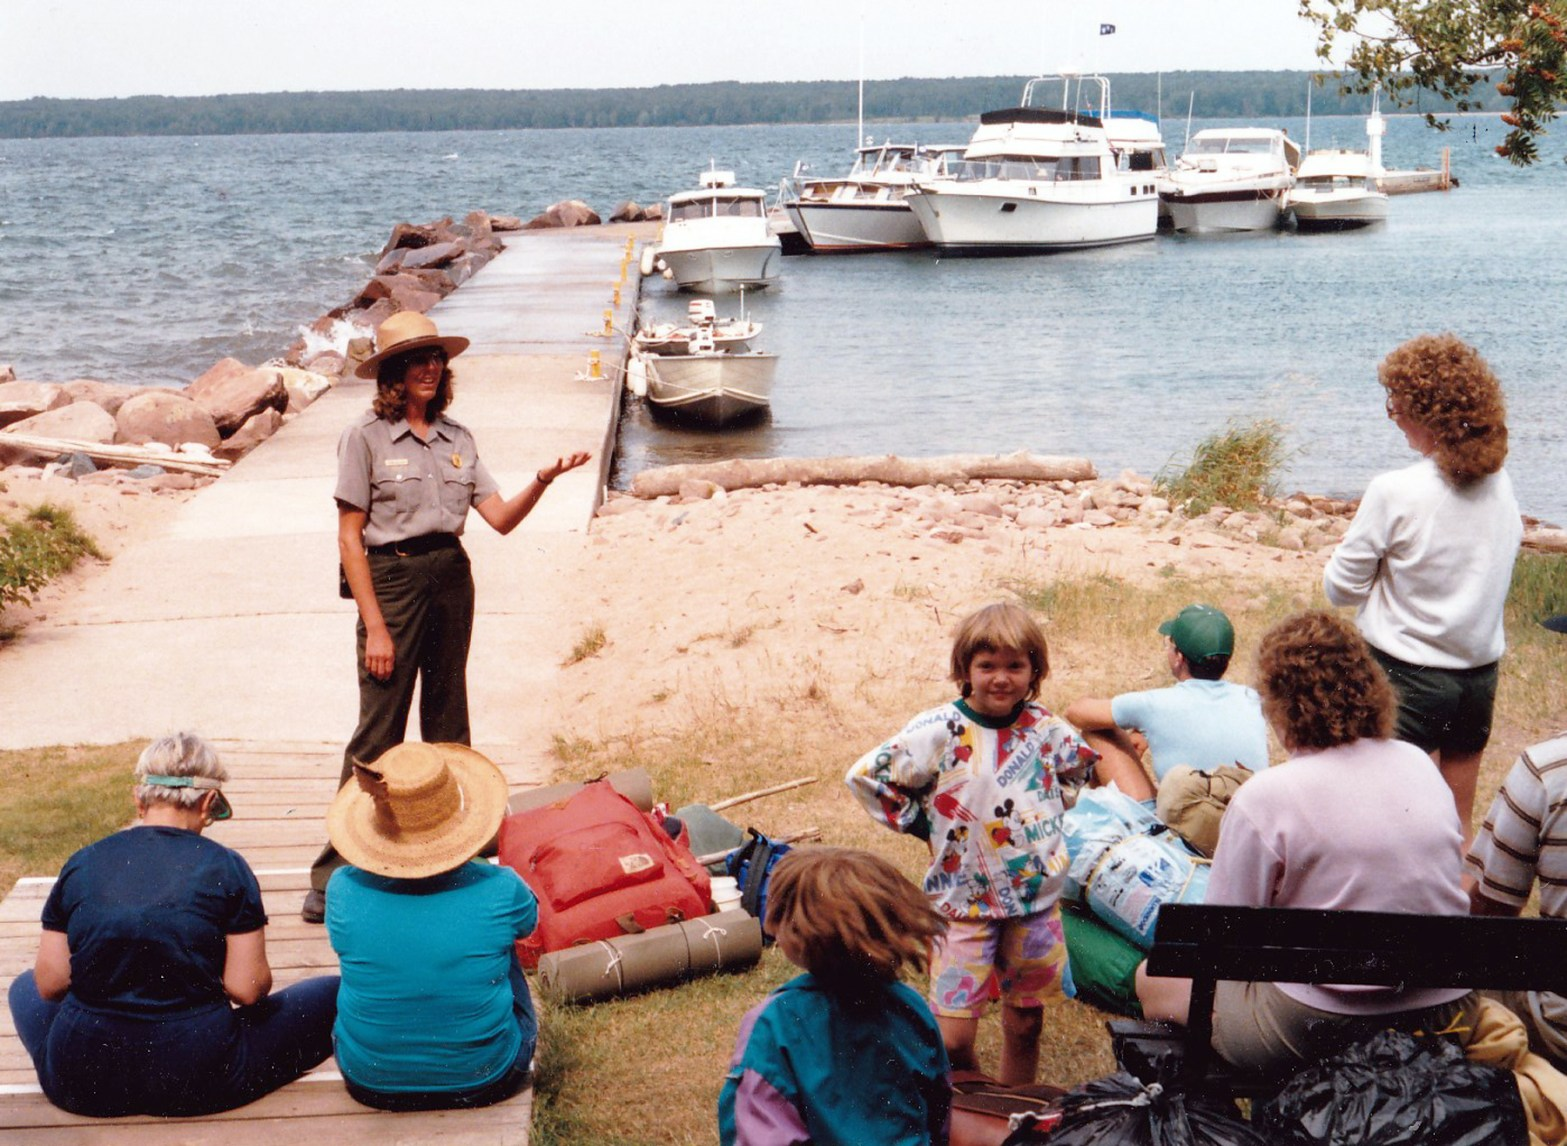 Terry talks with visitors at Presque Isle dock